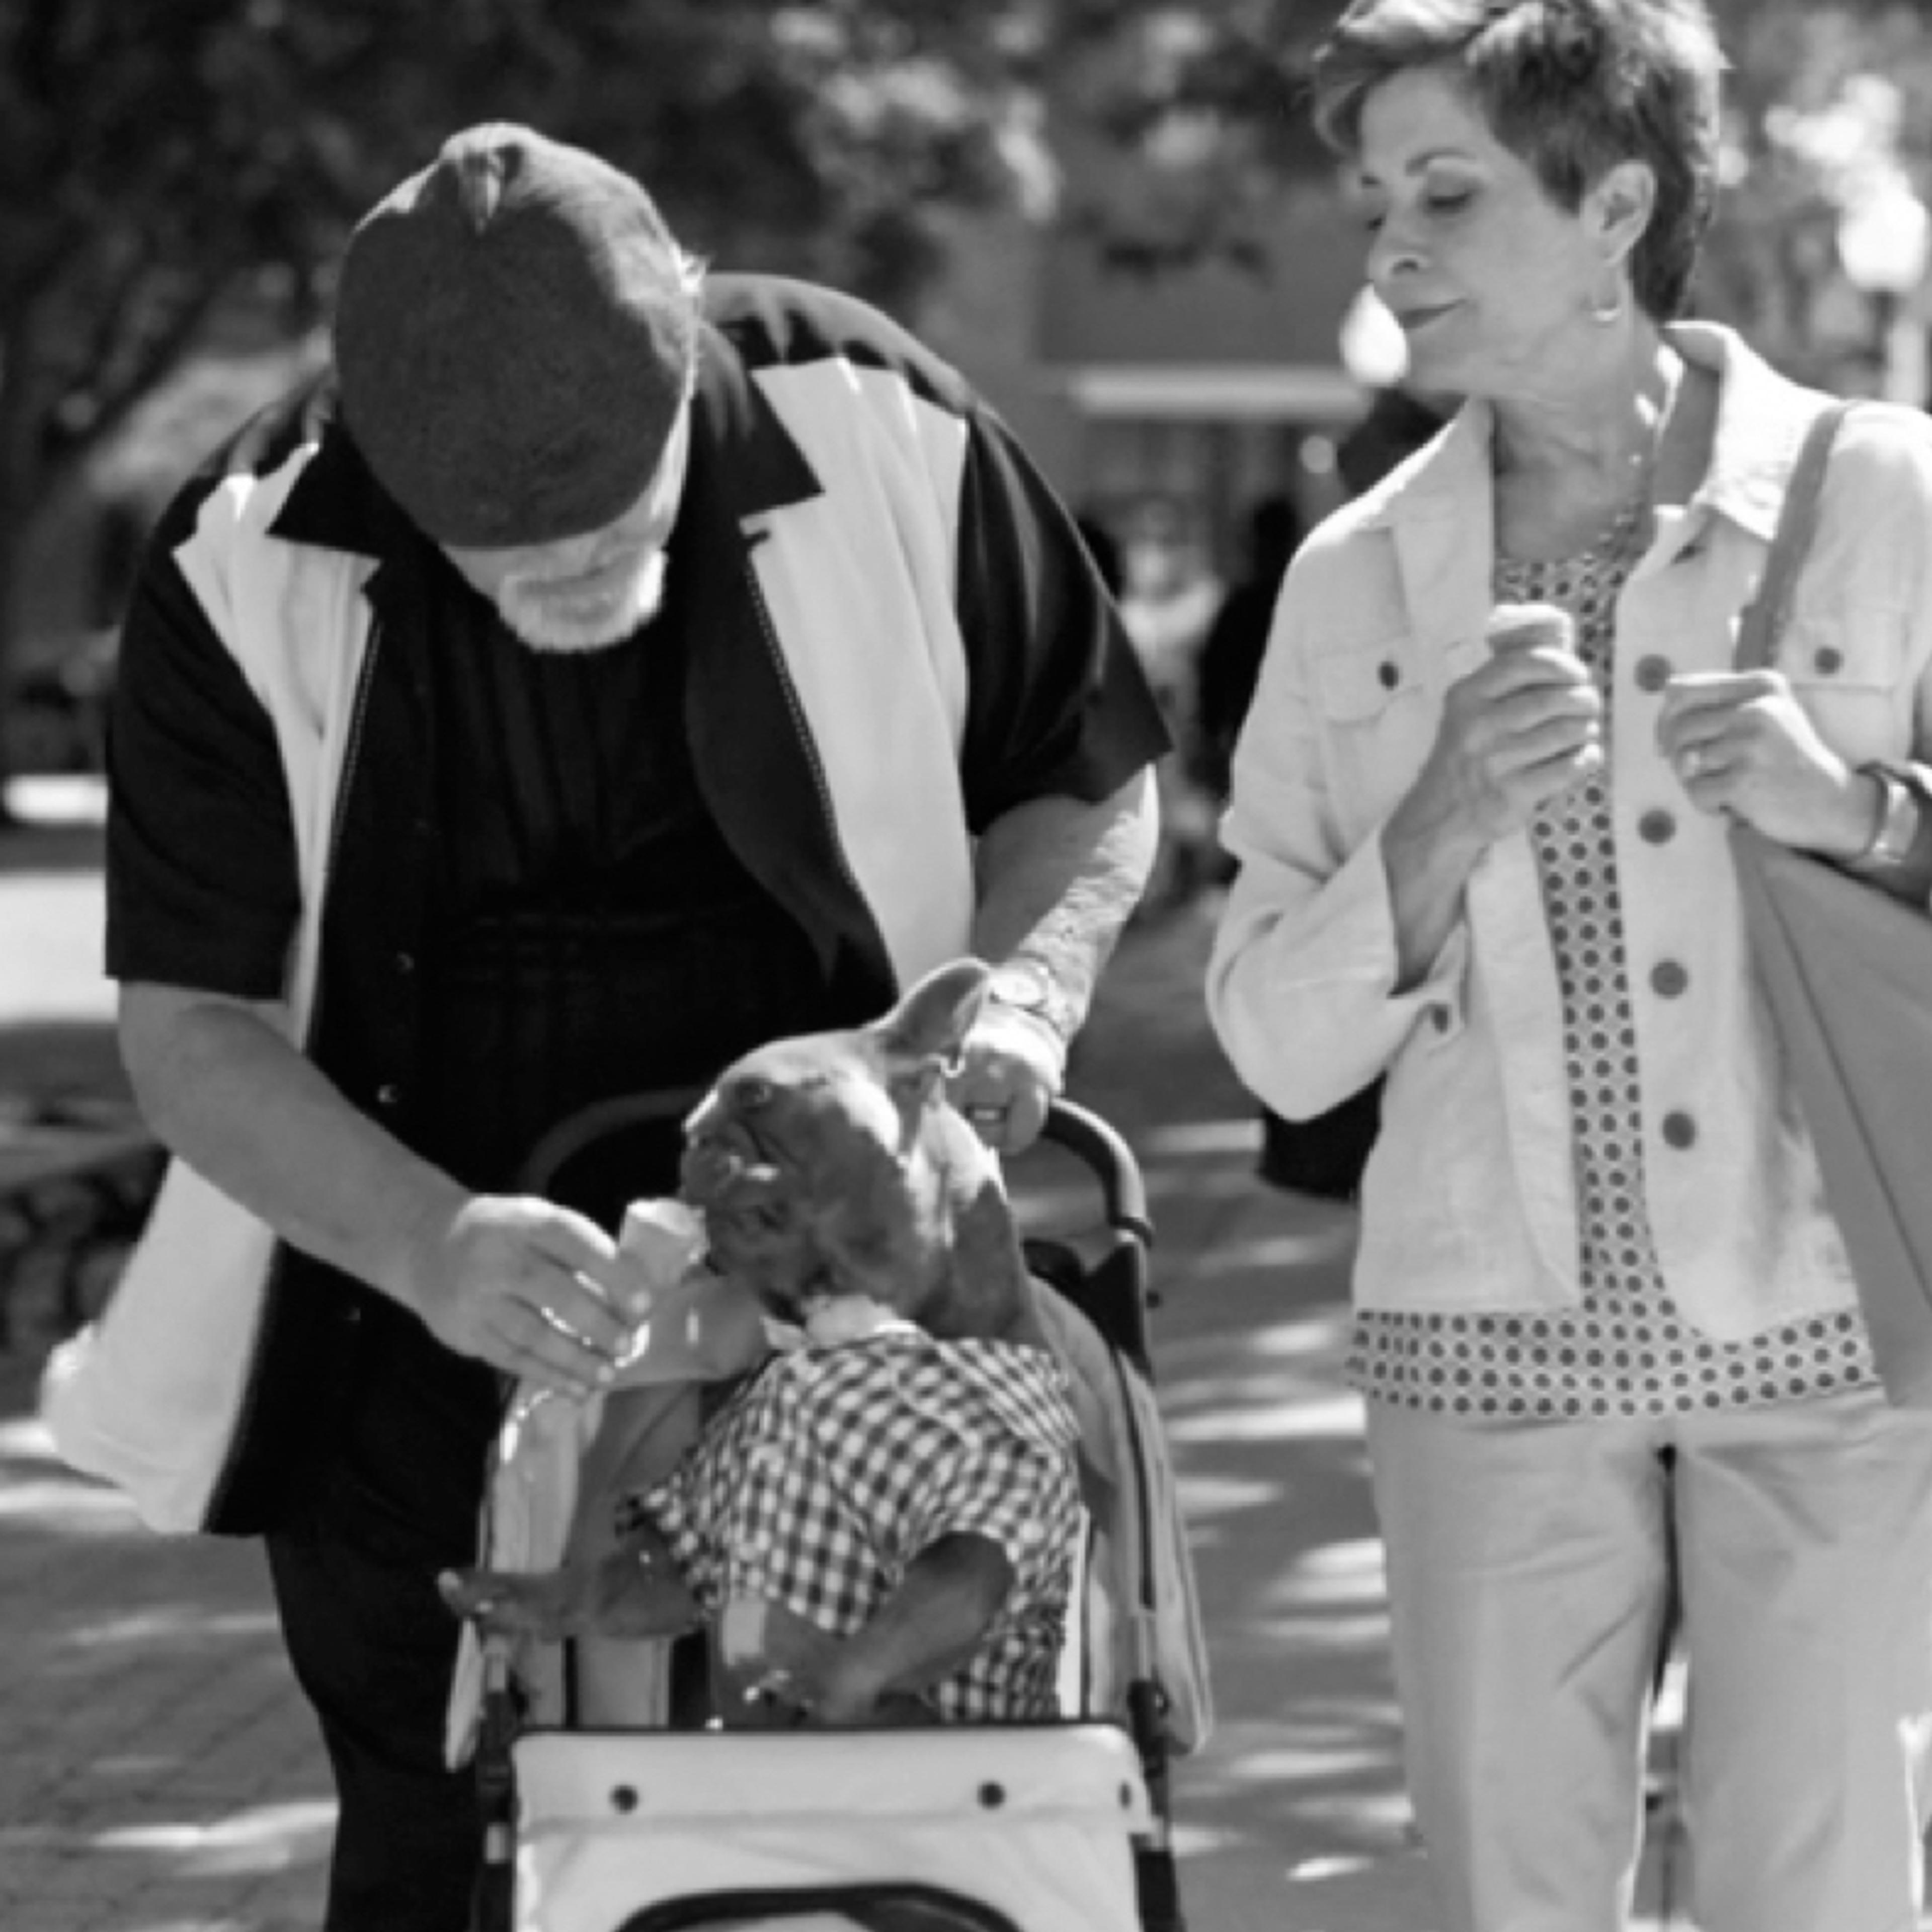 Couple feeding an ice cream cone to a dog in a stroller for BCBS video ad